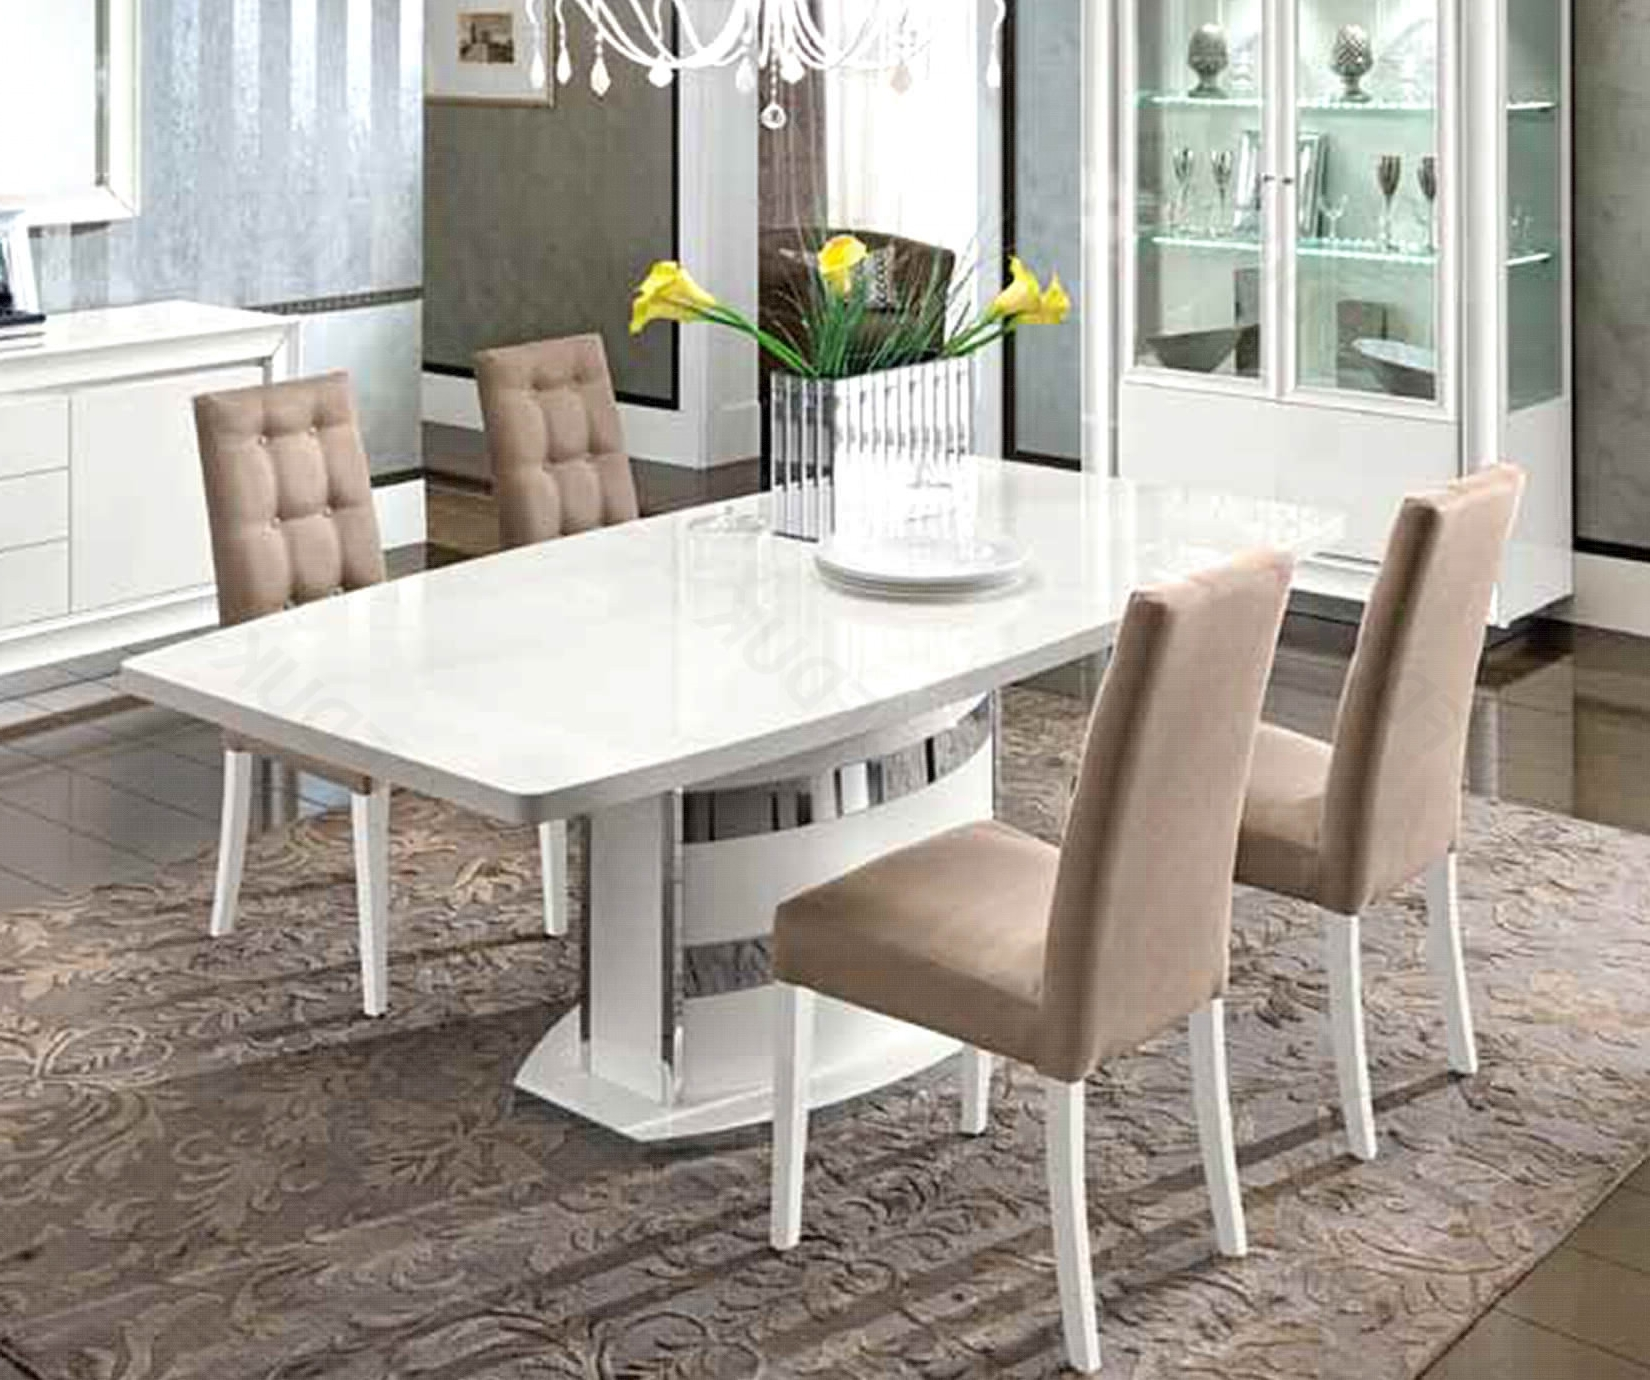 Dama Bianca White High Gloss Extending With Well Known White High Gloss Dining Tables And Chairs (Gallery 9 of 25)